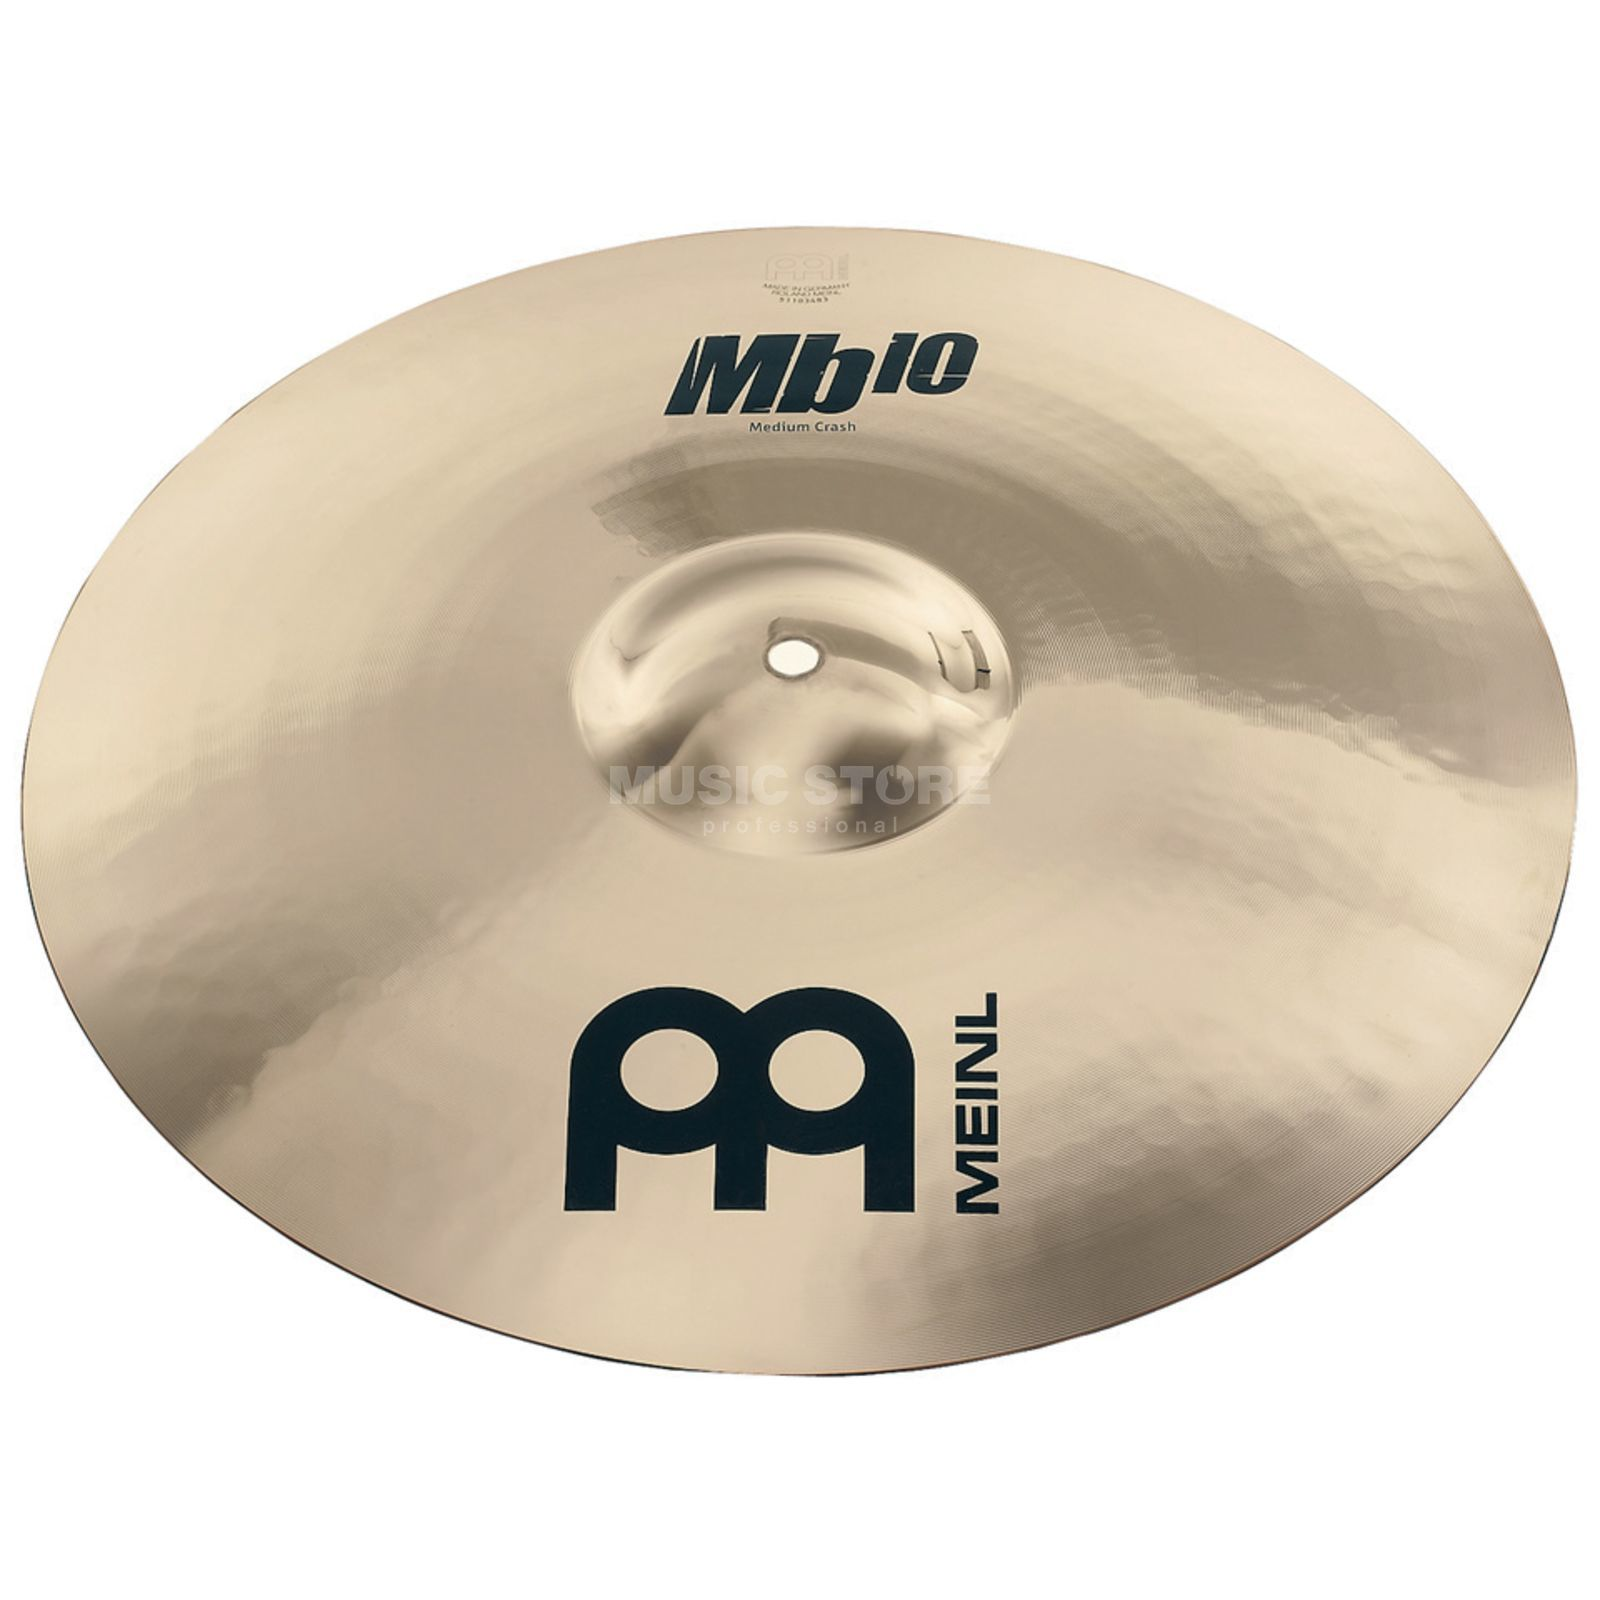 "Meinl MB10 Medium Crash 18"" MB10-18MC-B, Brilliant Finish Produktbillede"